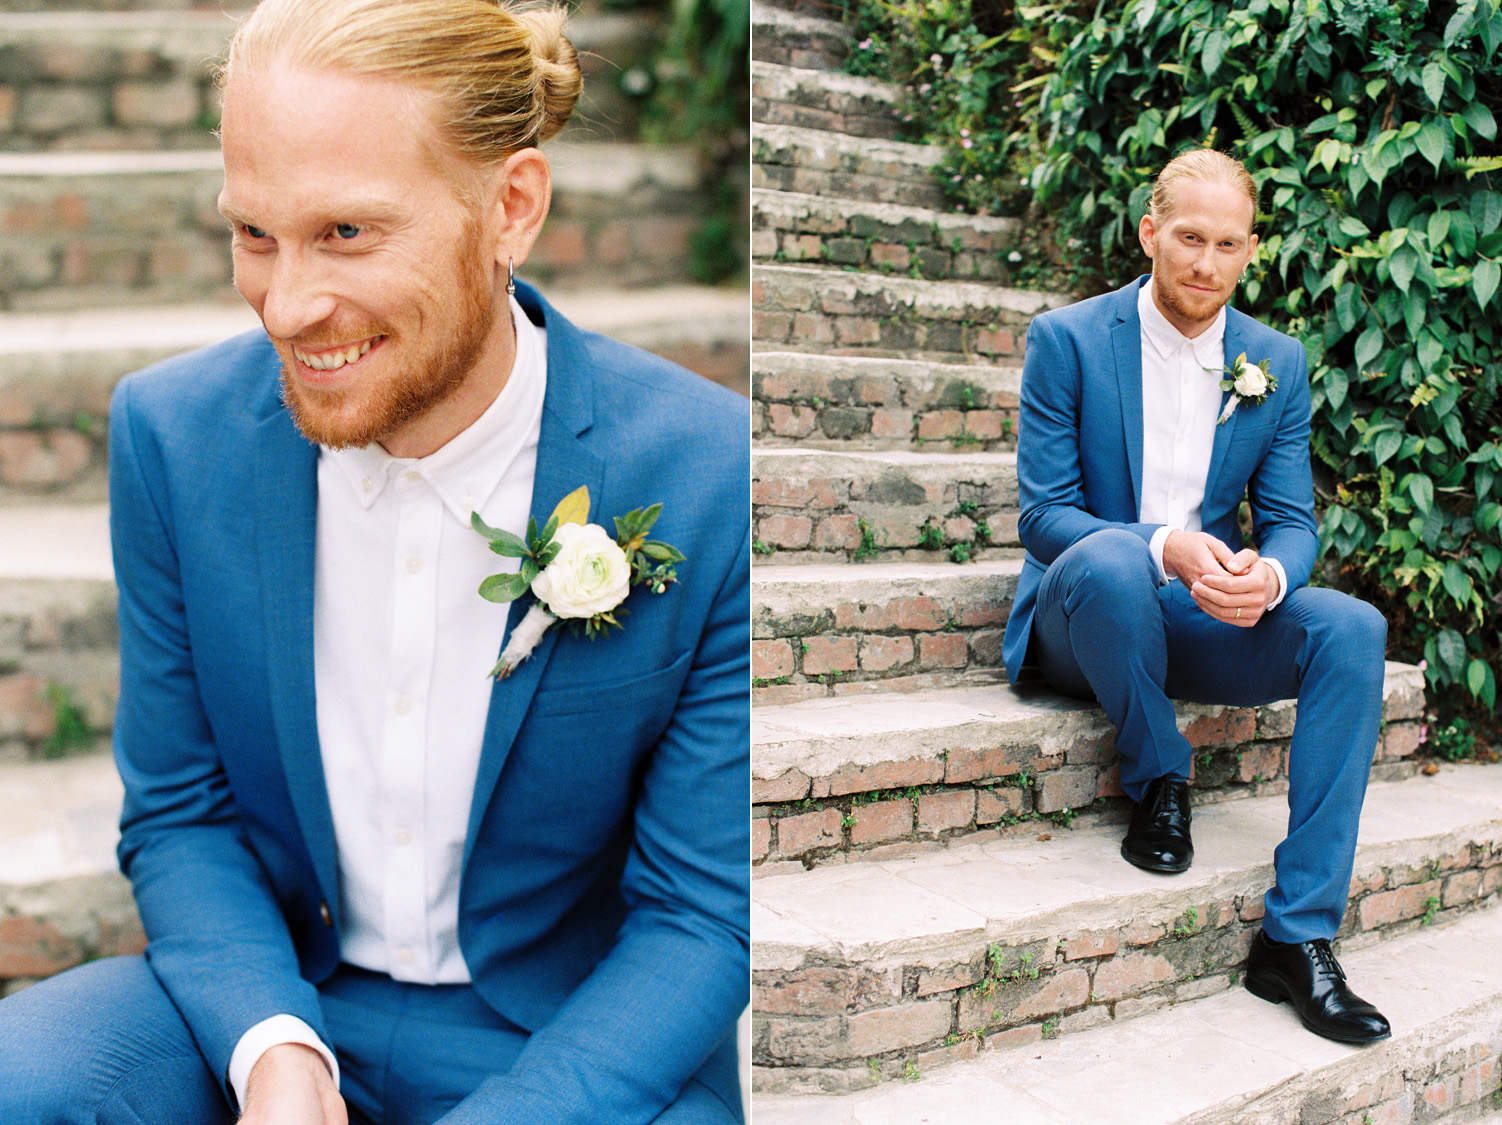 Nepal Wedding Photography with Shop Gossamer, Nina & Wes Photography & Zara